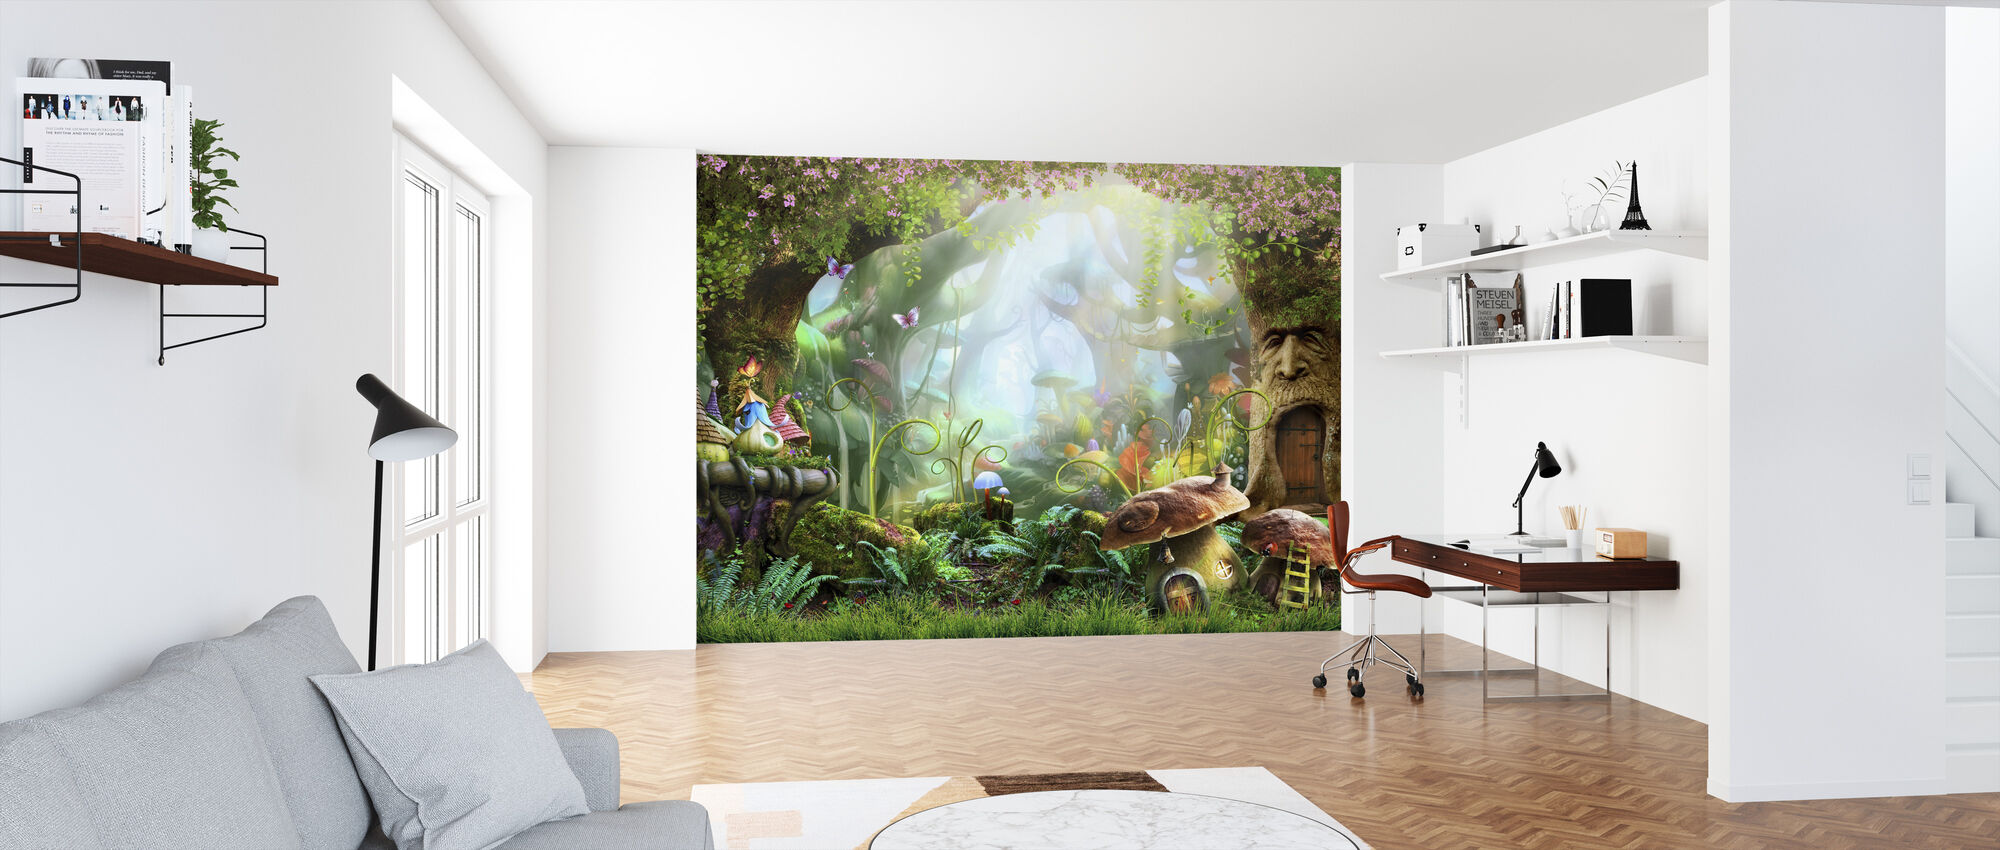 Enchanted Forest - Wallpaper - Office